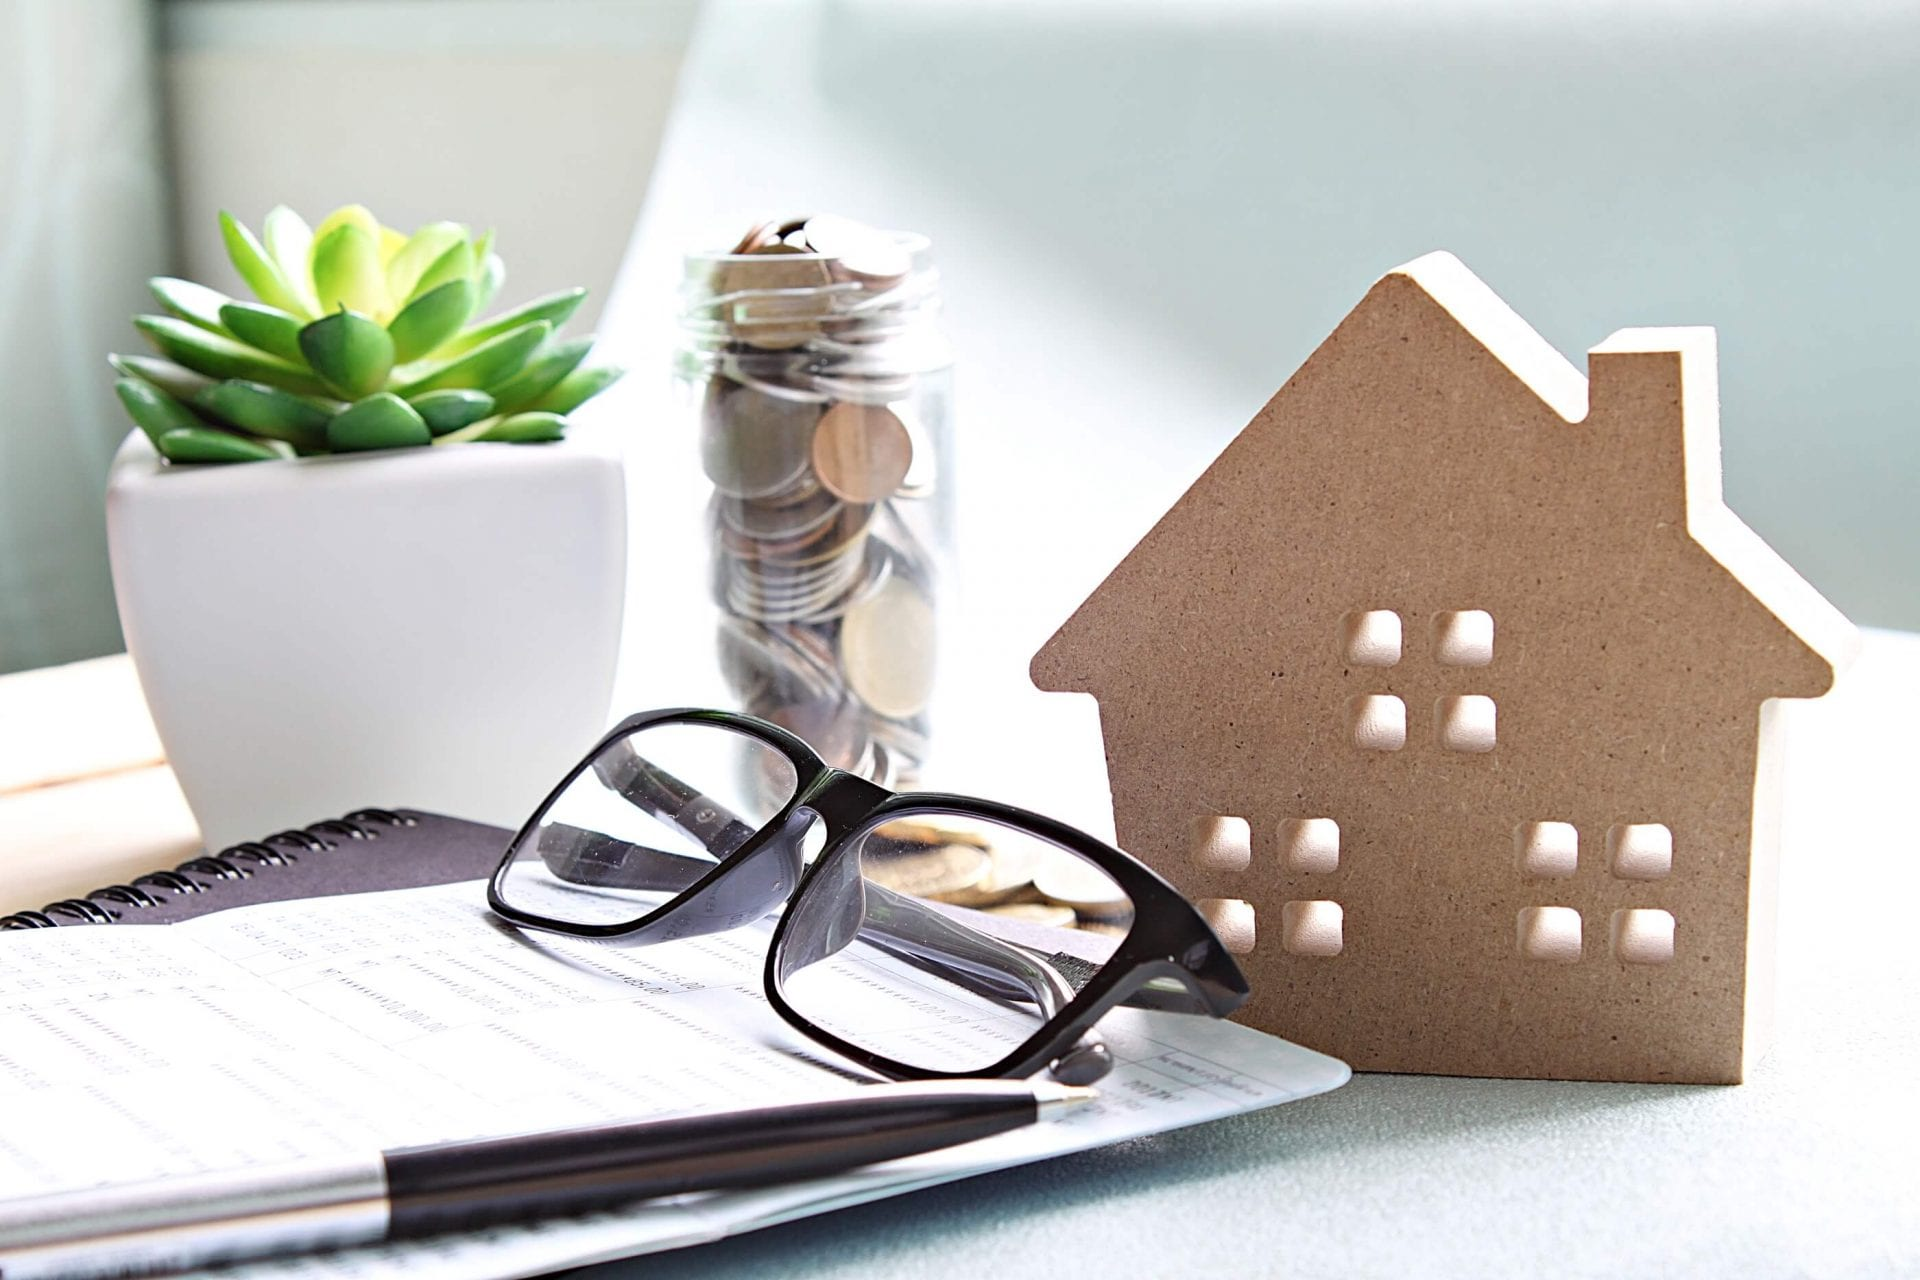 Pair of Black Glasses and Pen on Notebook on Desk with Potted Plant Jar of Coins and House Shaped Decoration